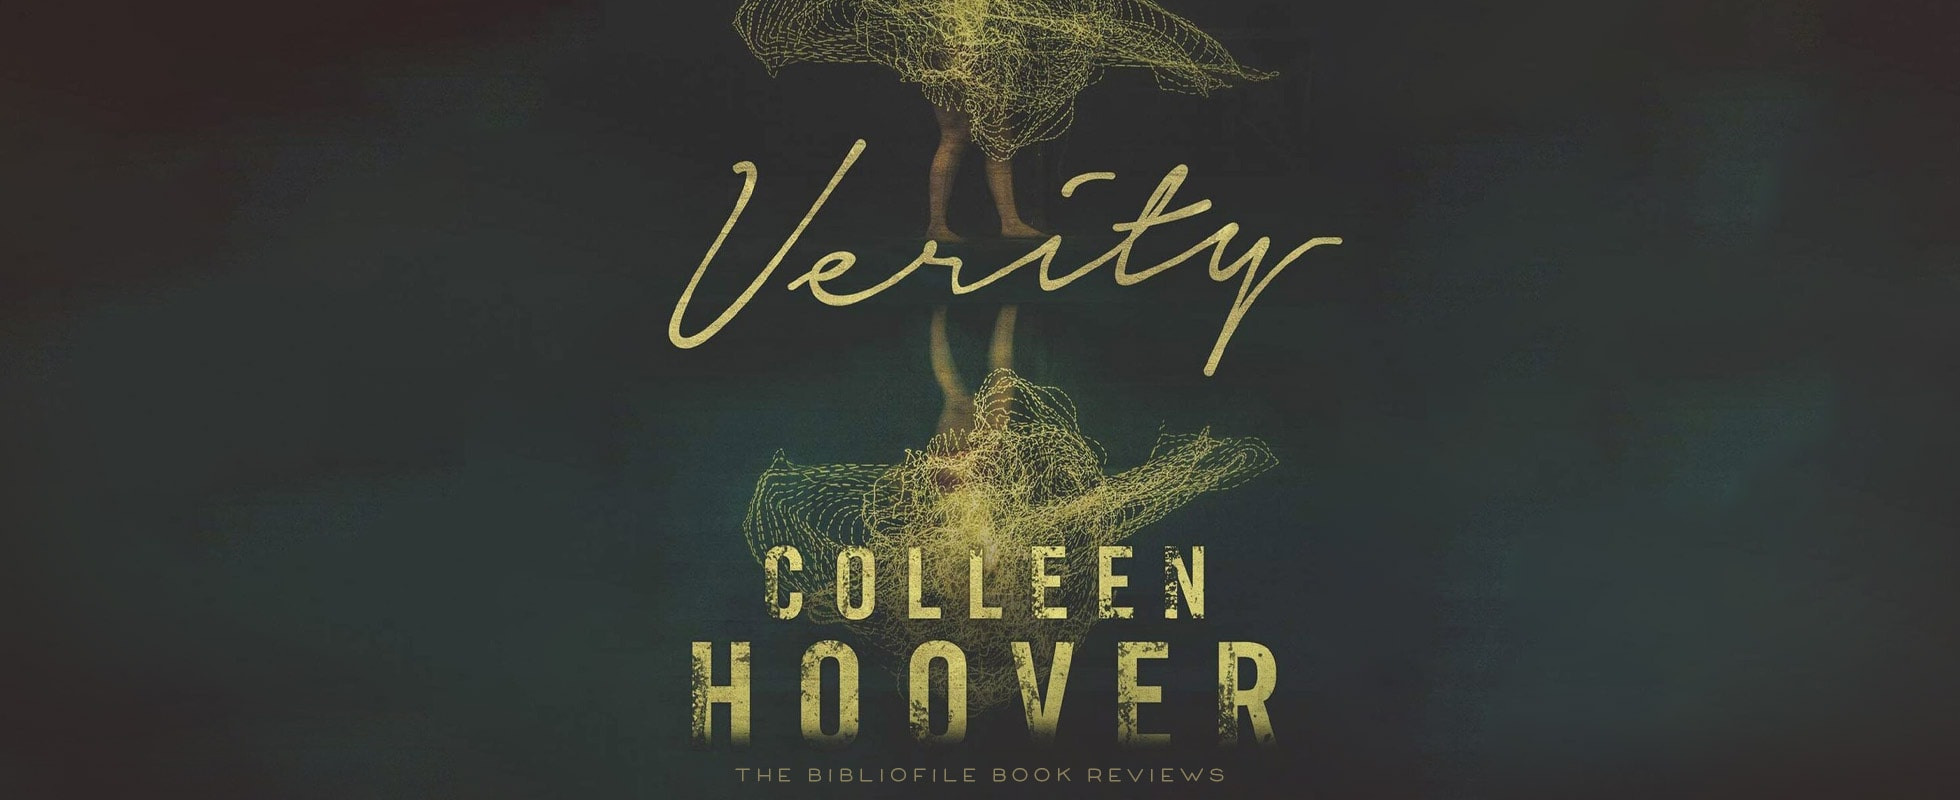 Verity by colleen hoover book review plot summary synopsis recap spoilers